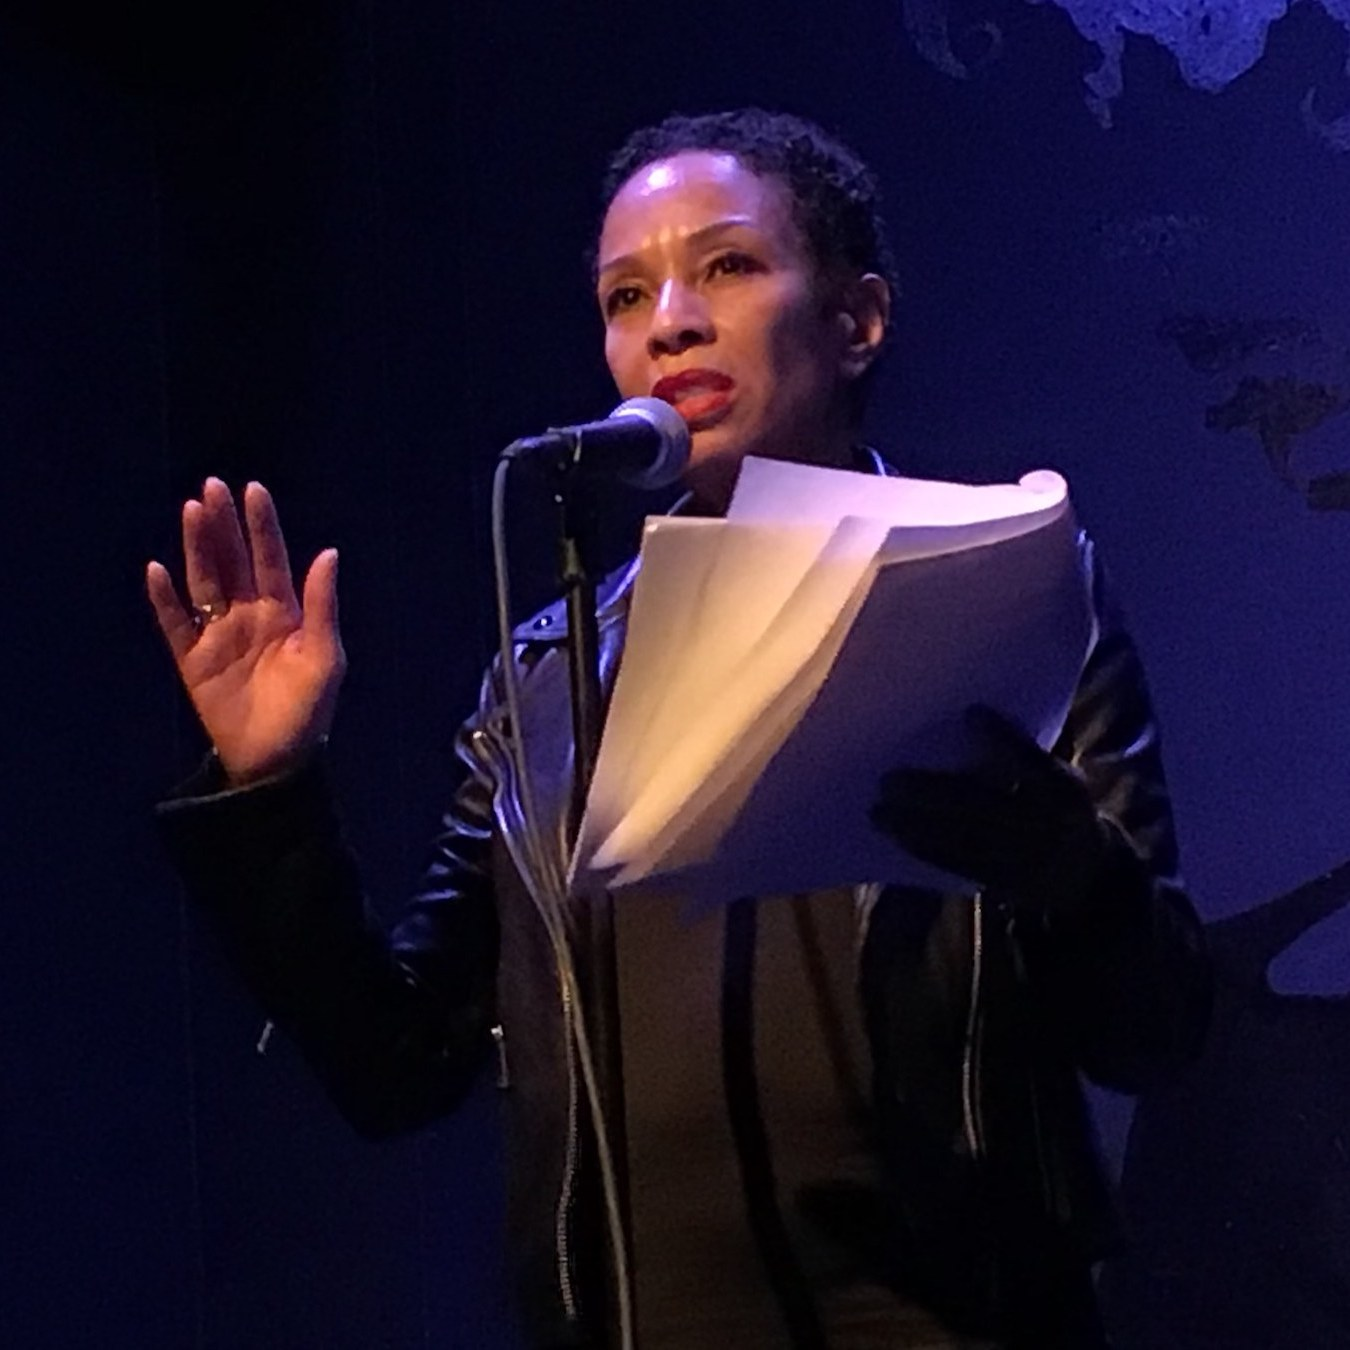 Performer Mia Paschal in a black leather jacket reads from a script onstage.